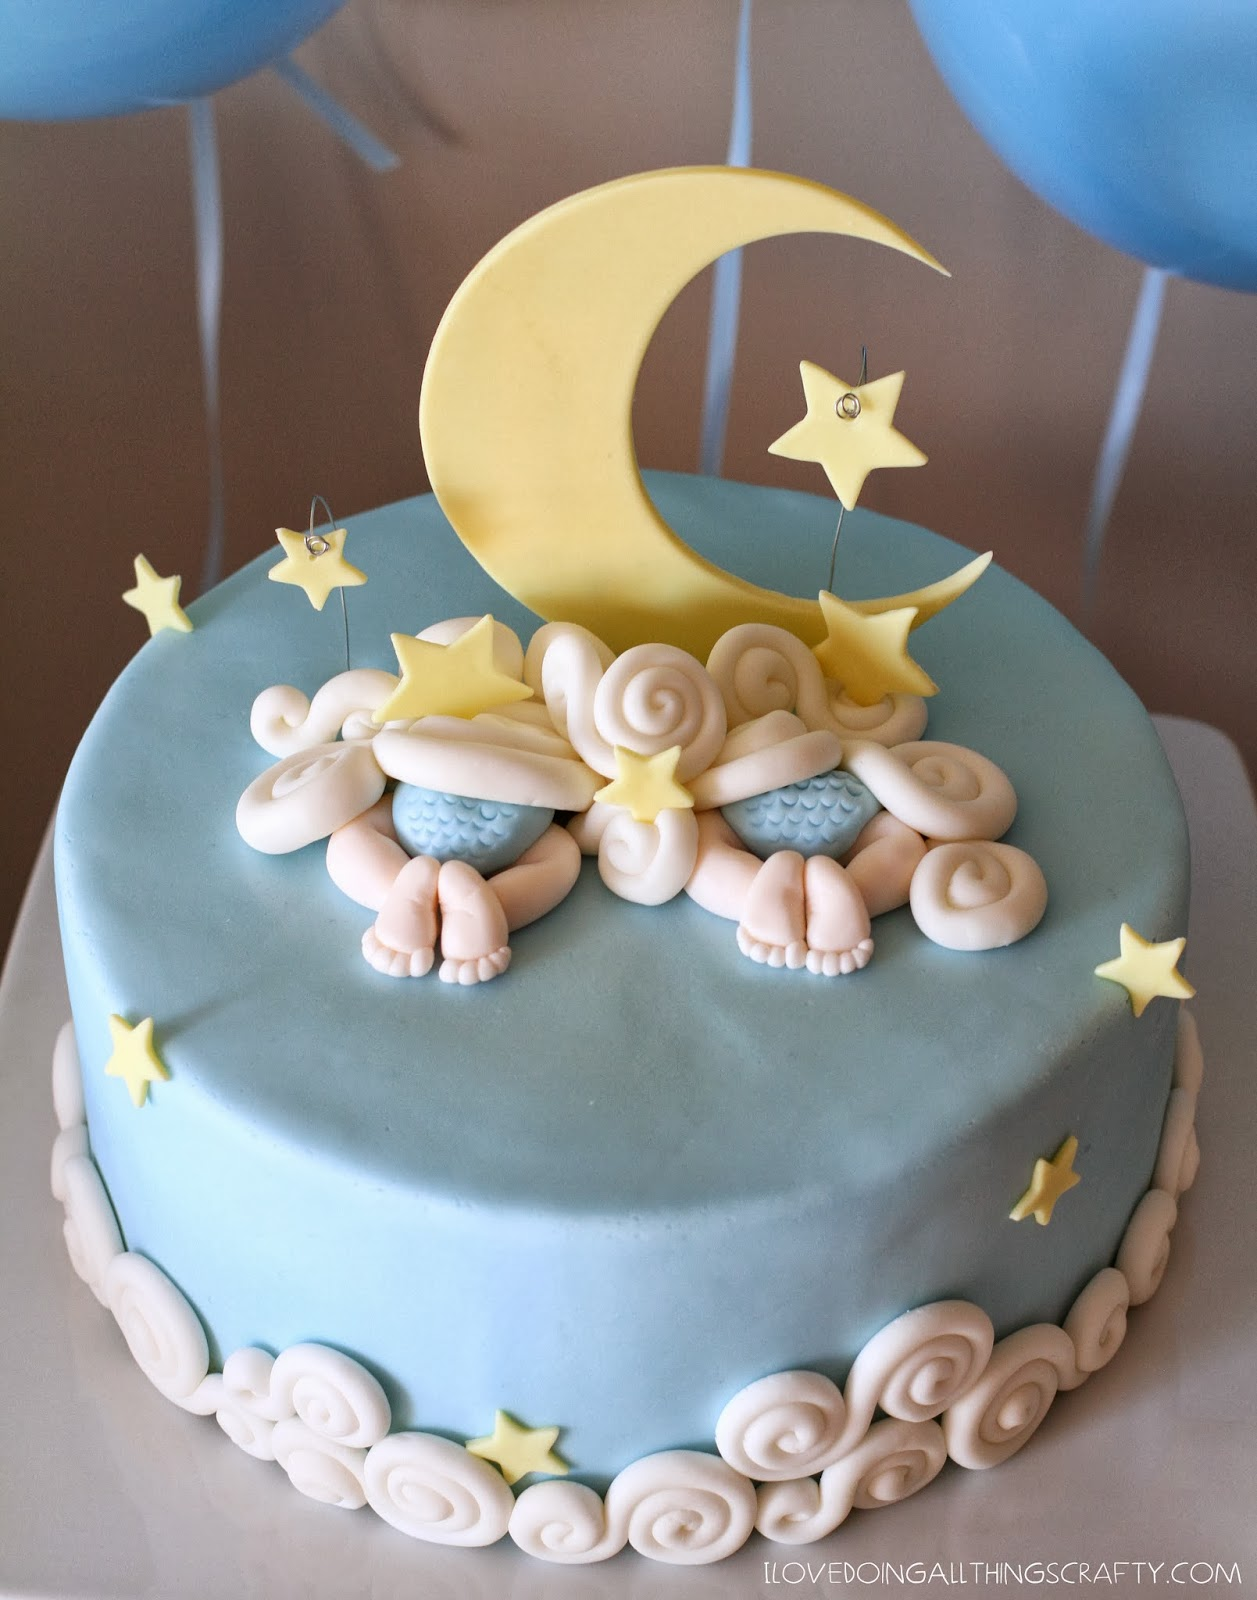 ove d oing a ll things crafty moon star clouds twin baby shower